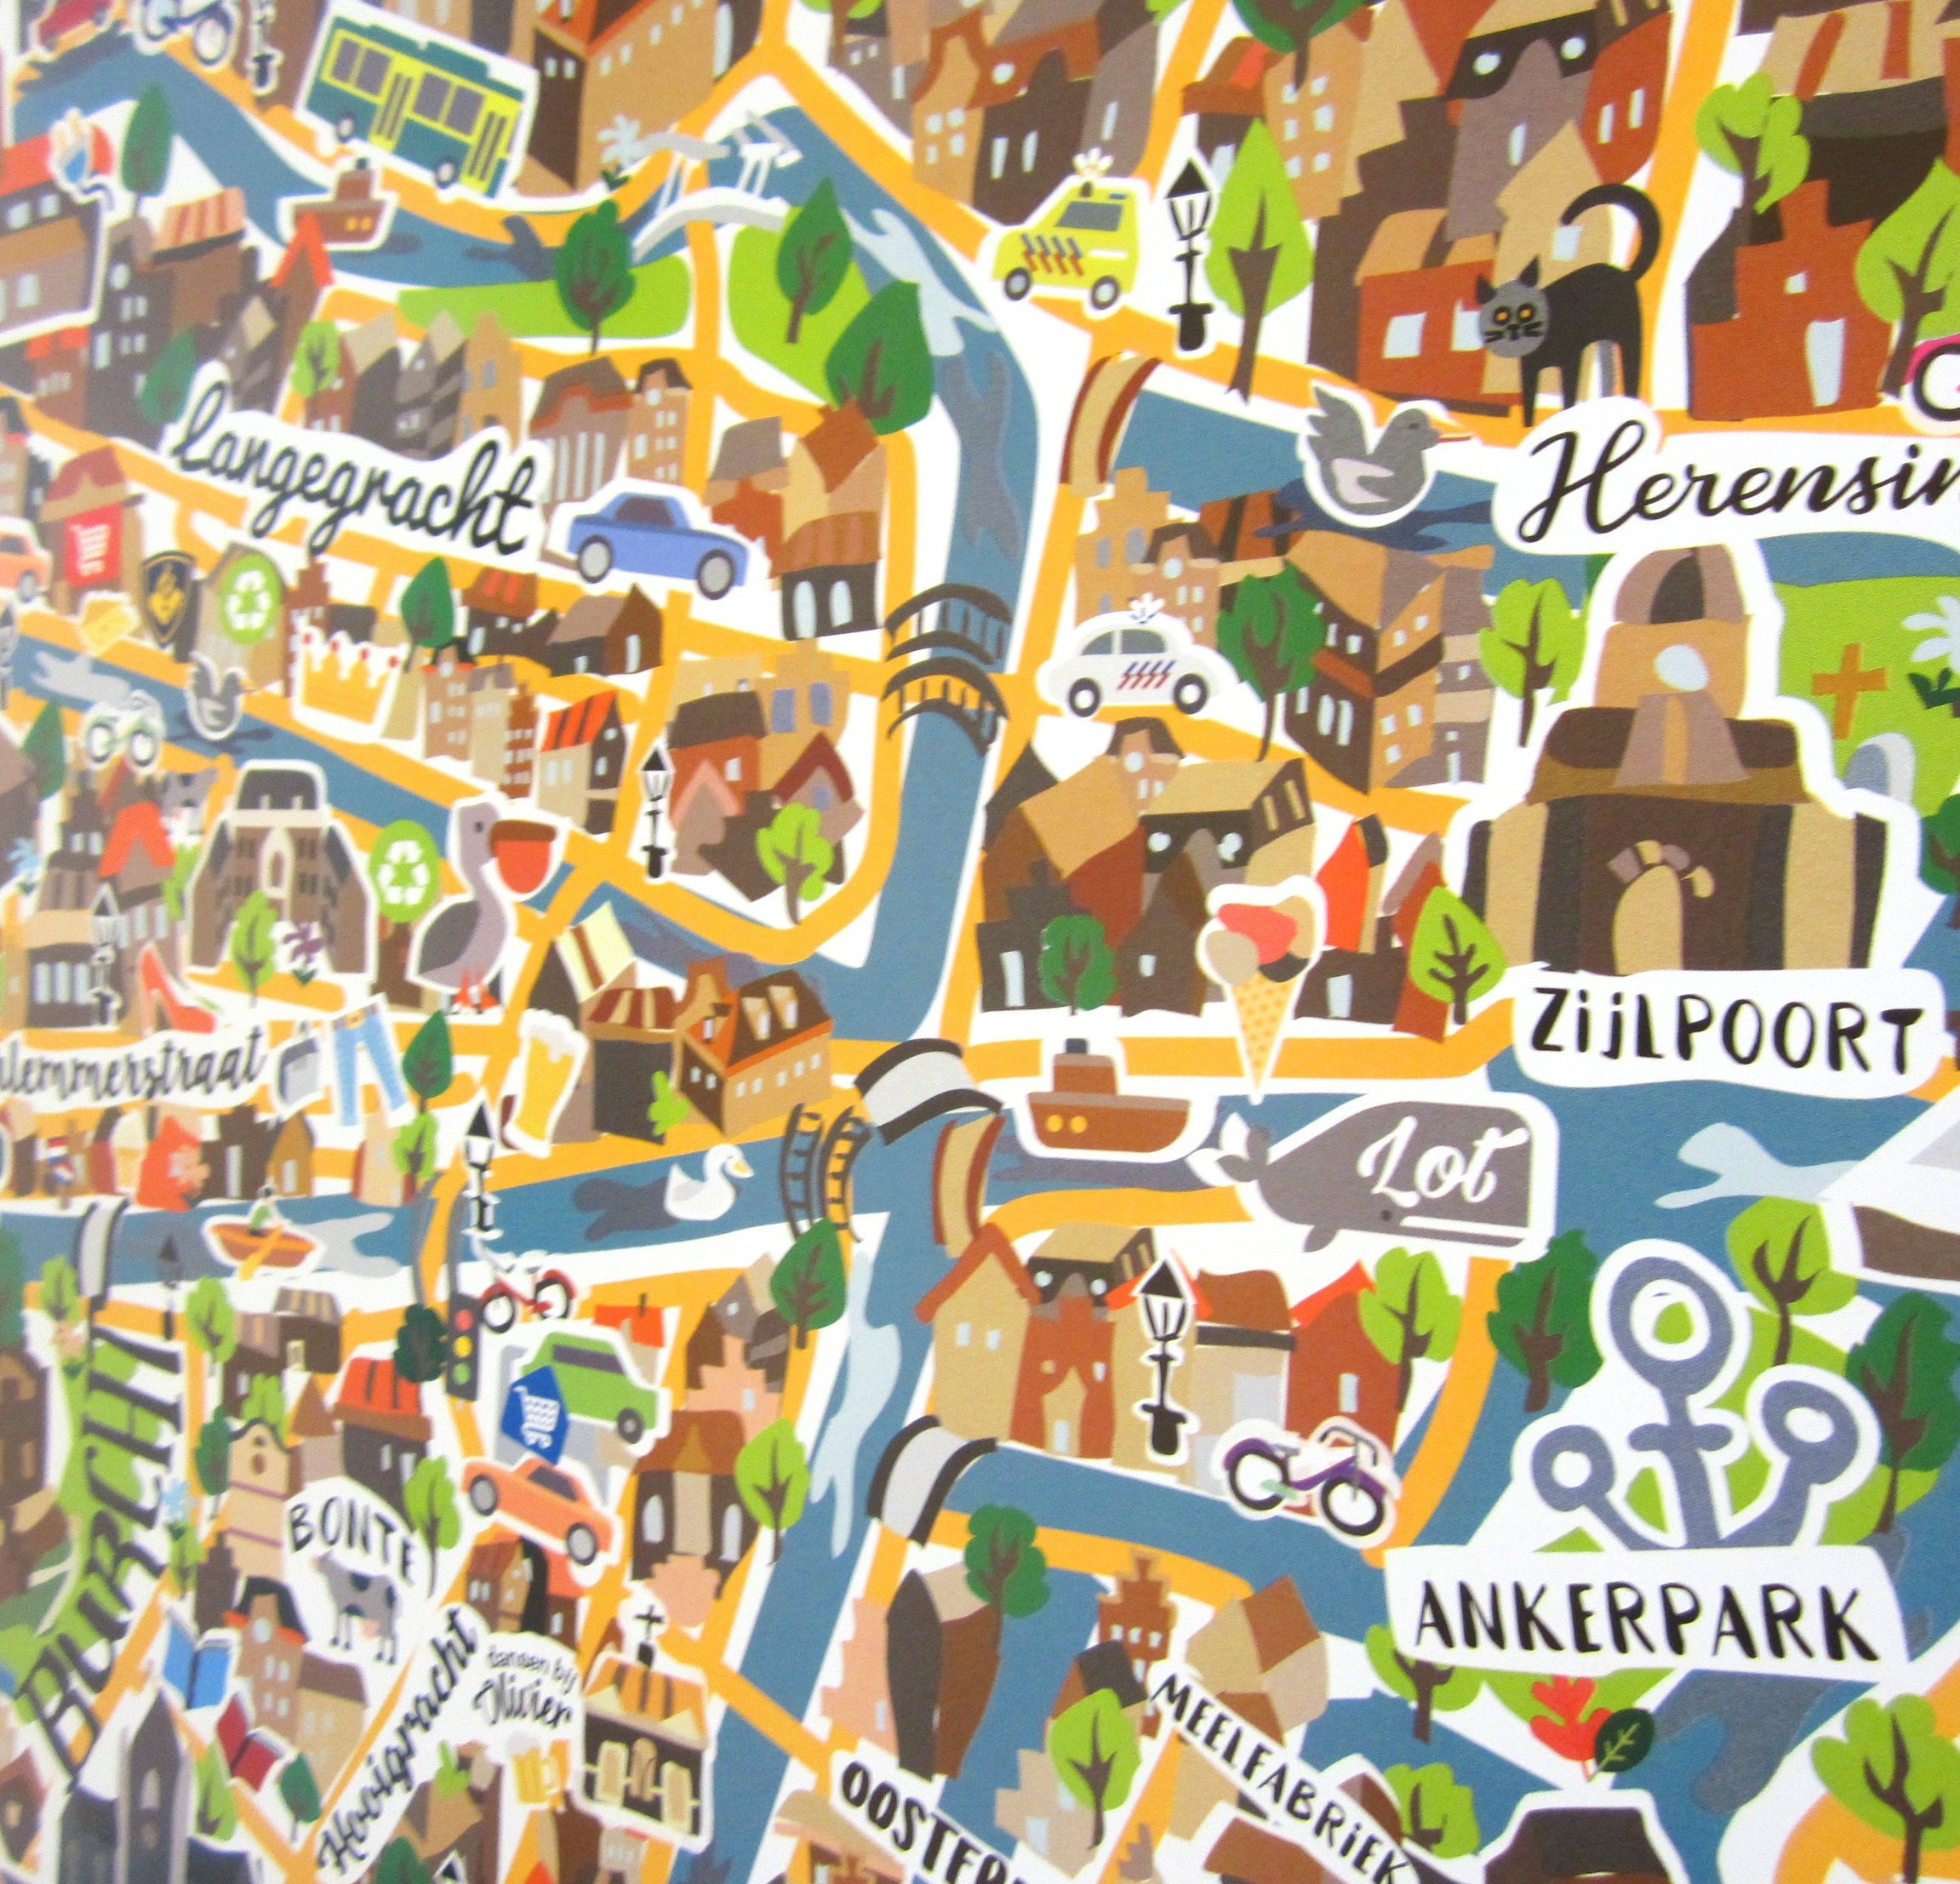 Leiden illustrated map poster on